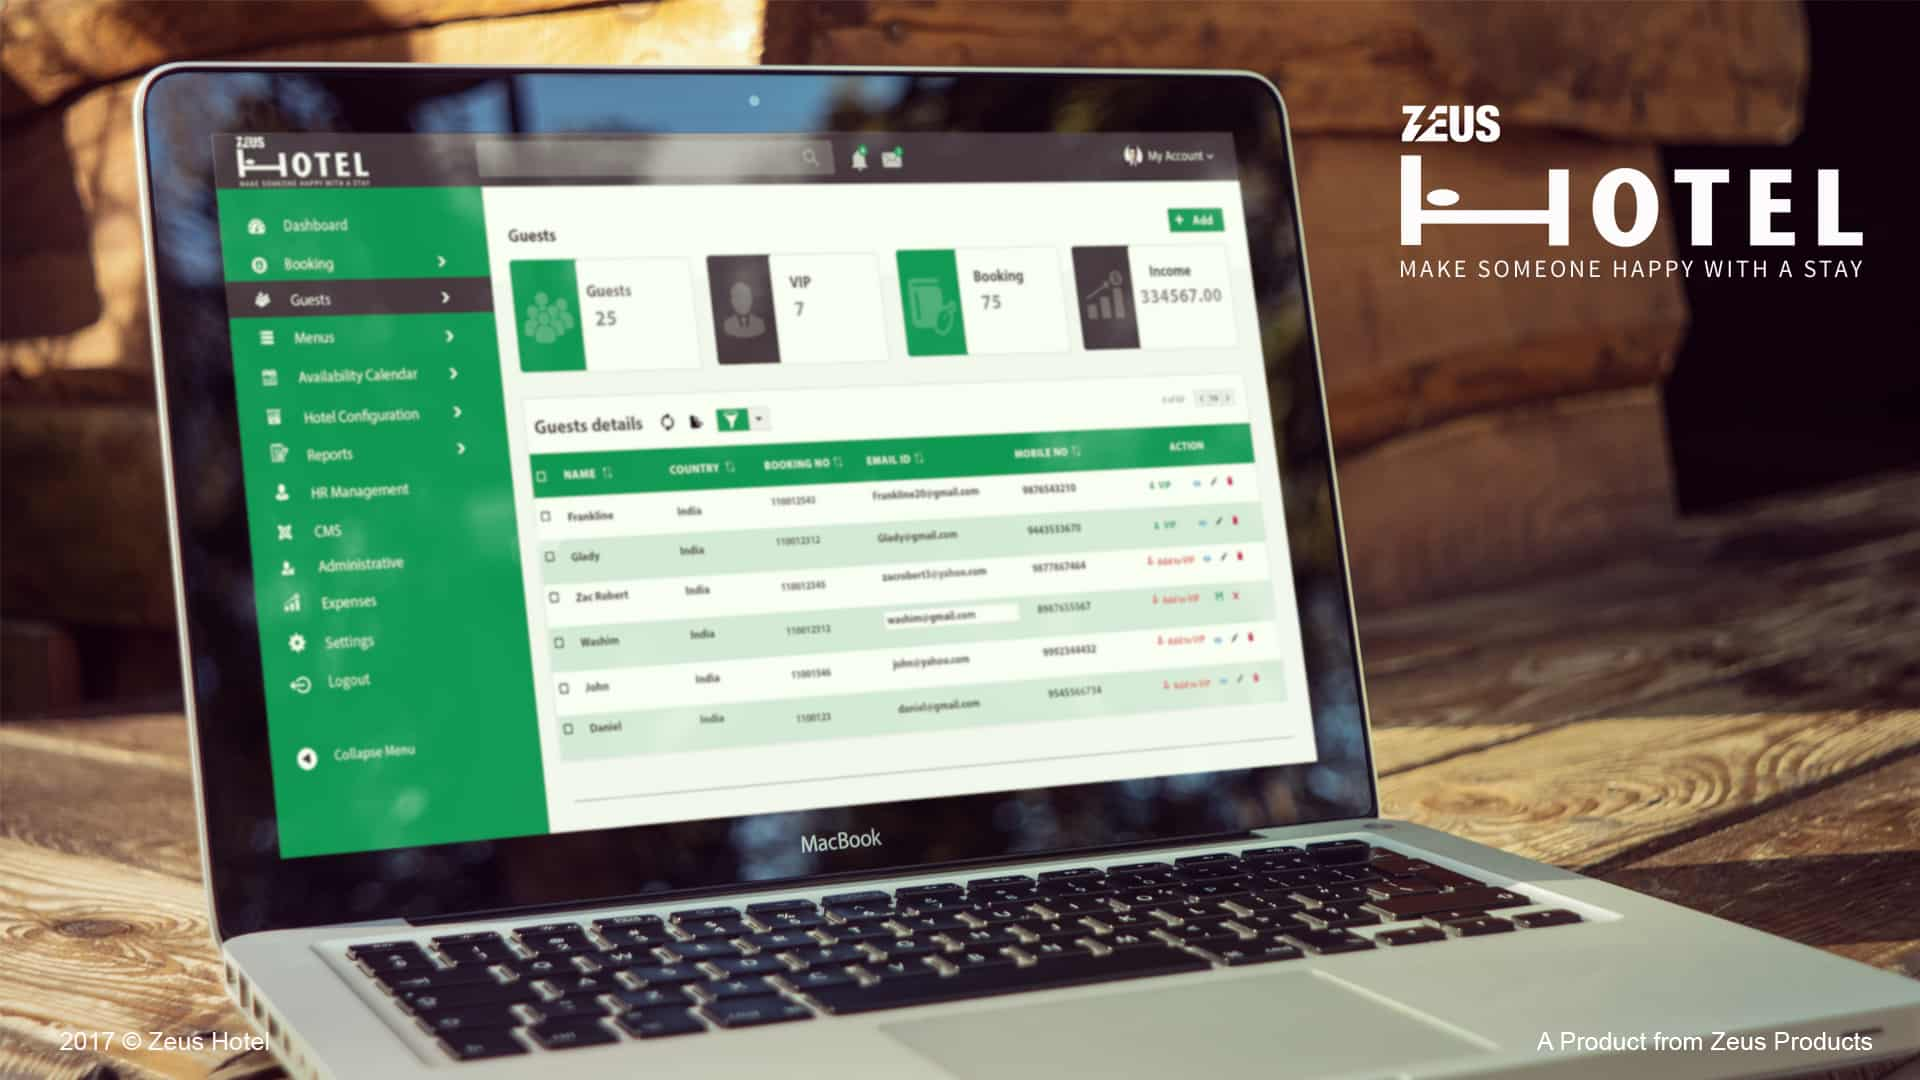 Zeus Hotel CRM Mock up listing